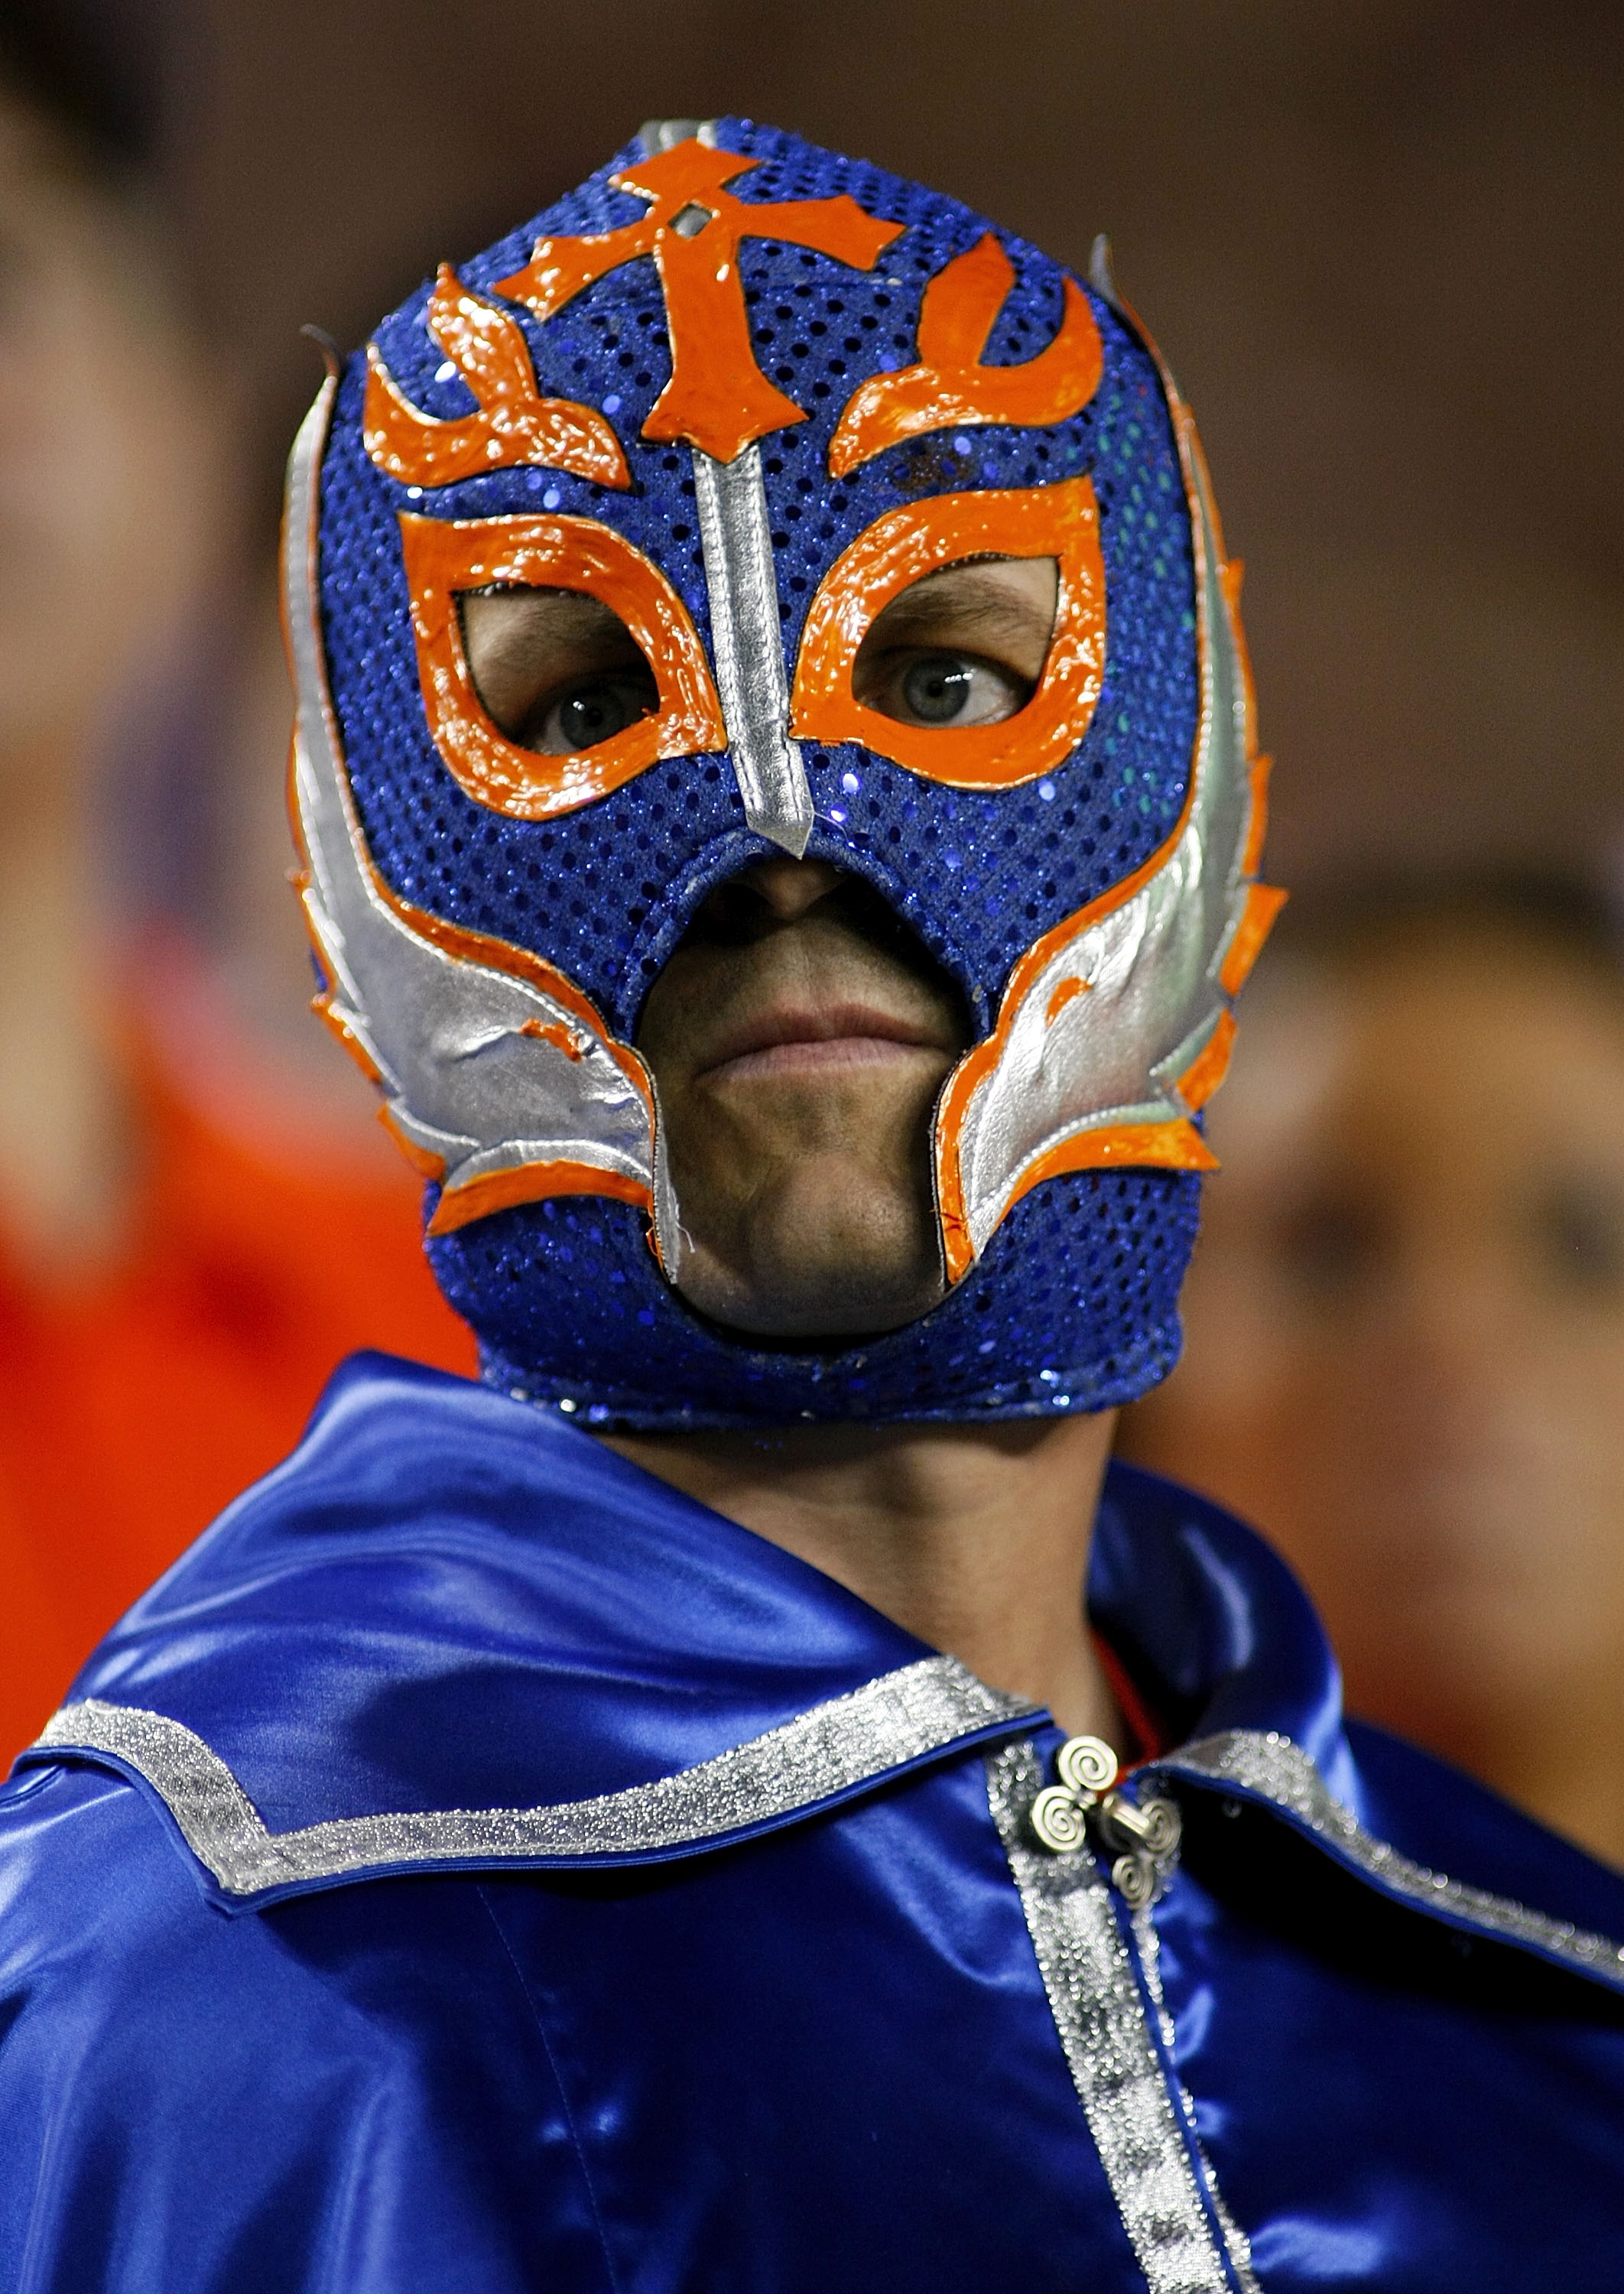 LANDOVER, MD - SEPTEMBER 06:  A Boise State Broncos fan watches from the stands against the Virginia Tech Hokies at FedExField on September 6, 2010 in Landover, Maryland.  (Photo by Geoff Burke/Getty Images)